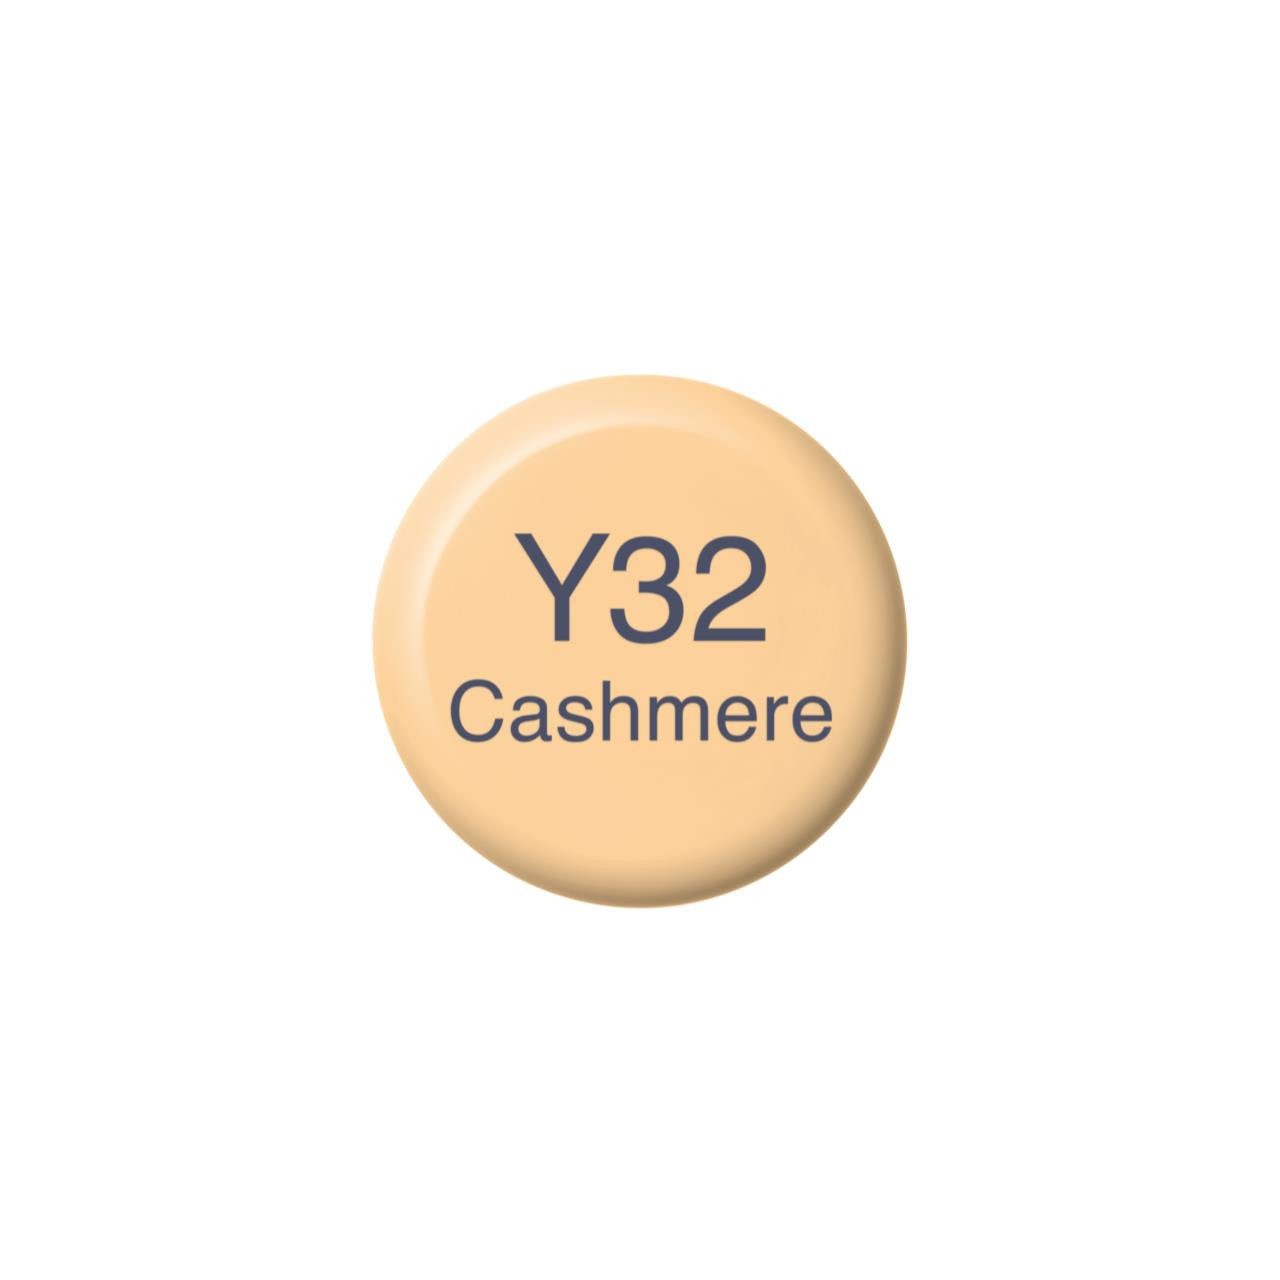 Y32 Cashmere, Copic Ink - 4511338058305